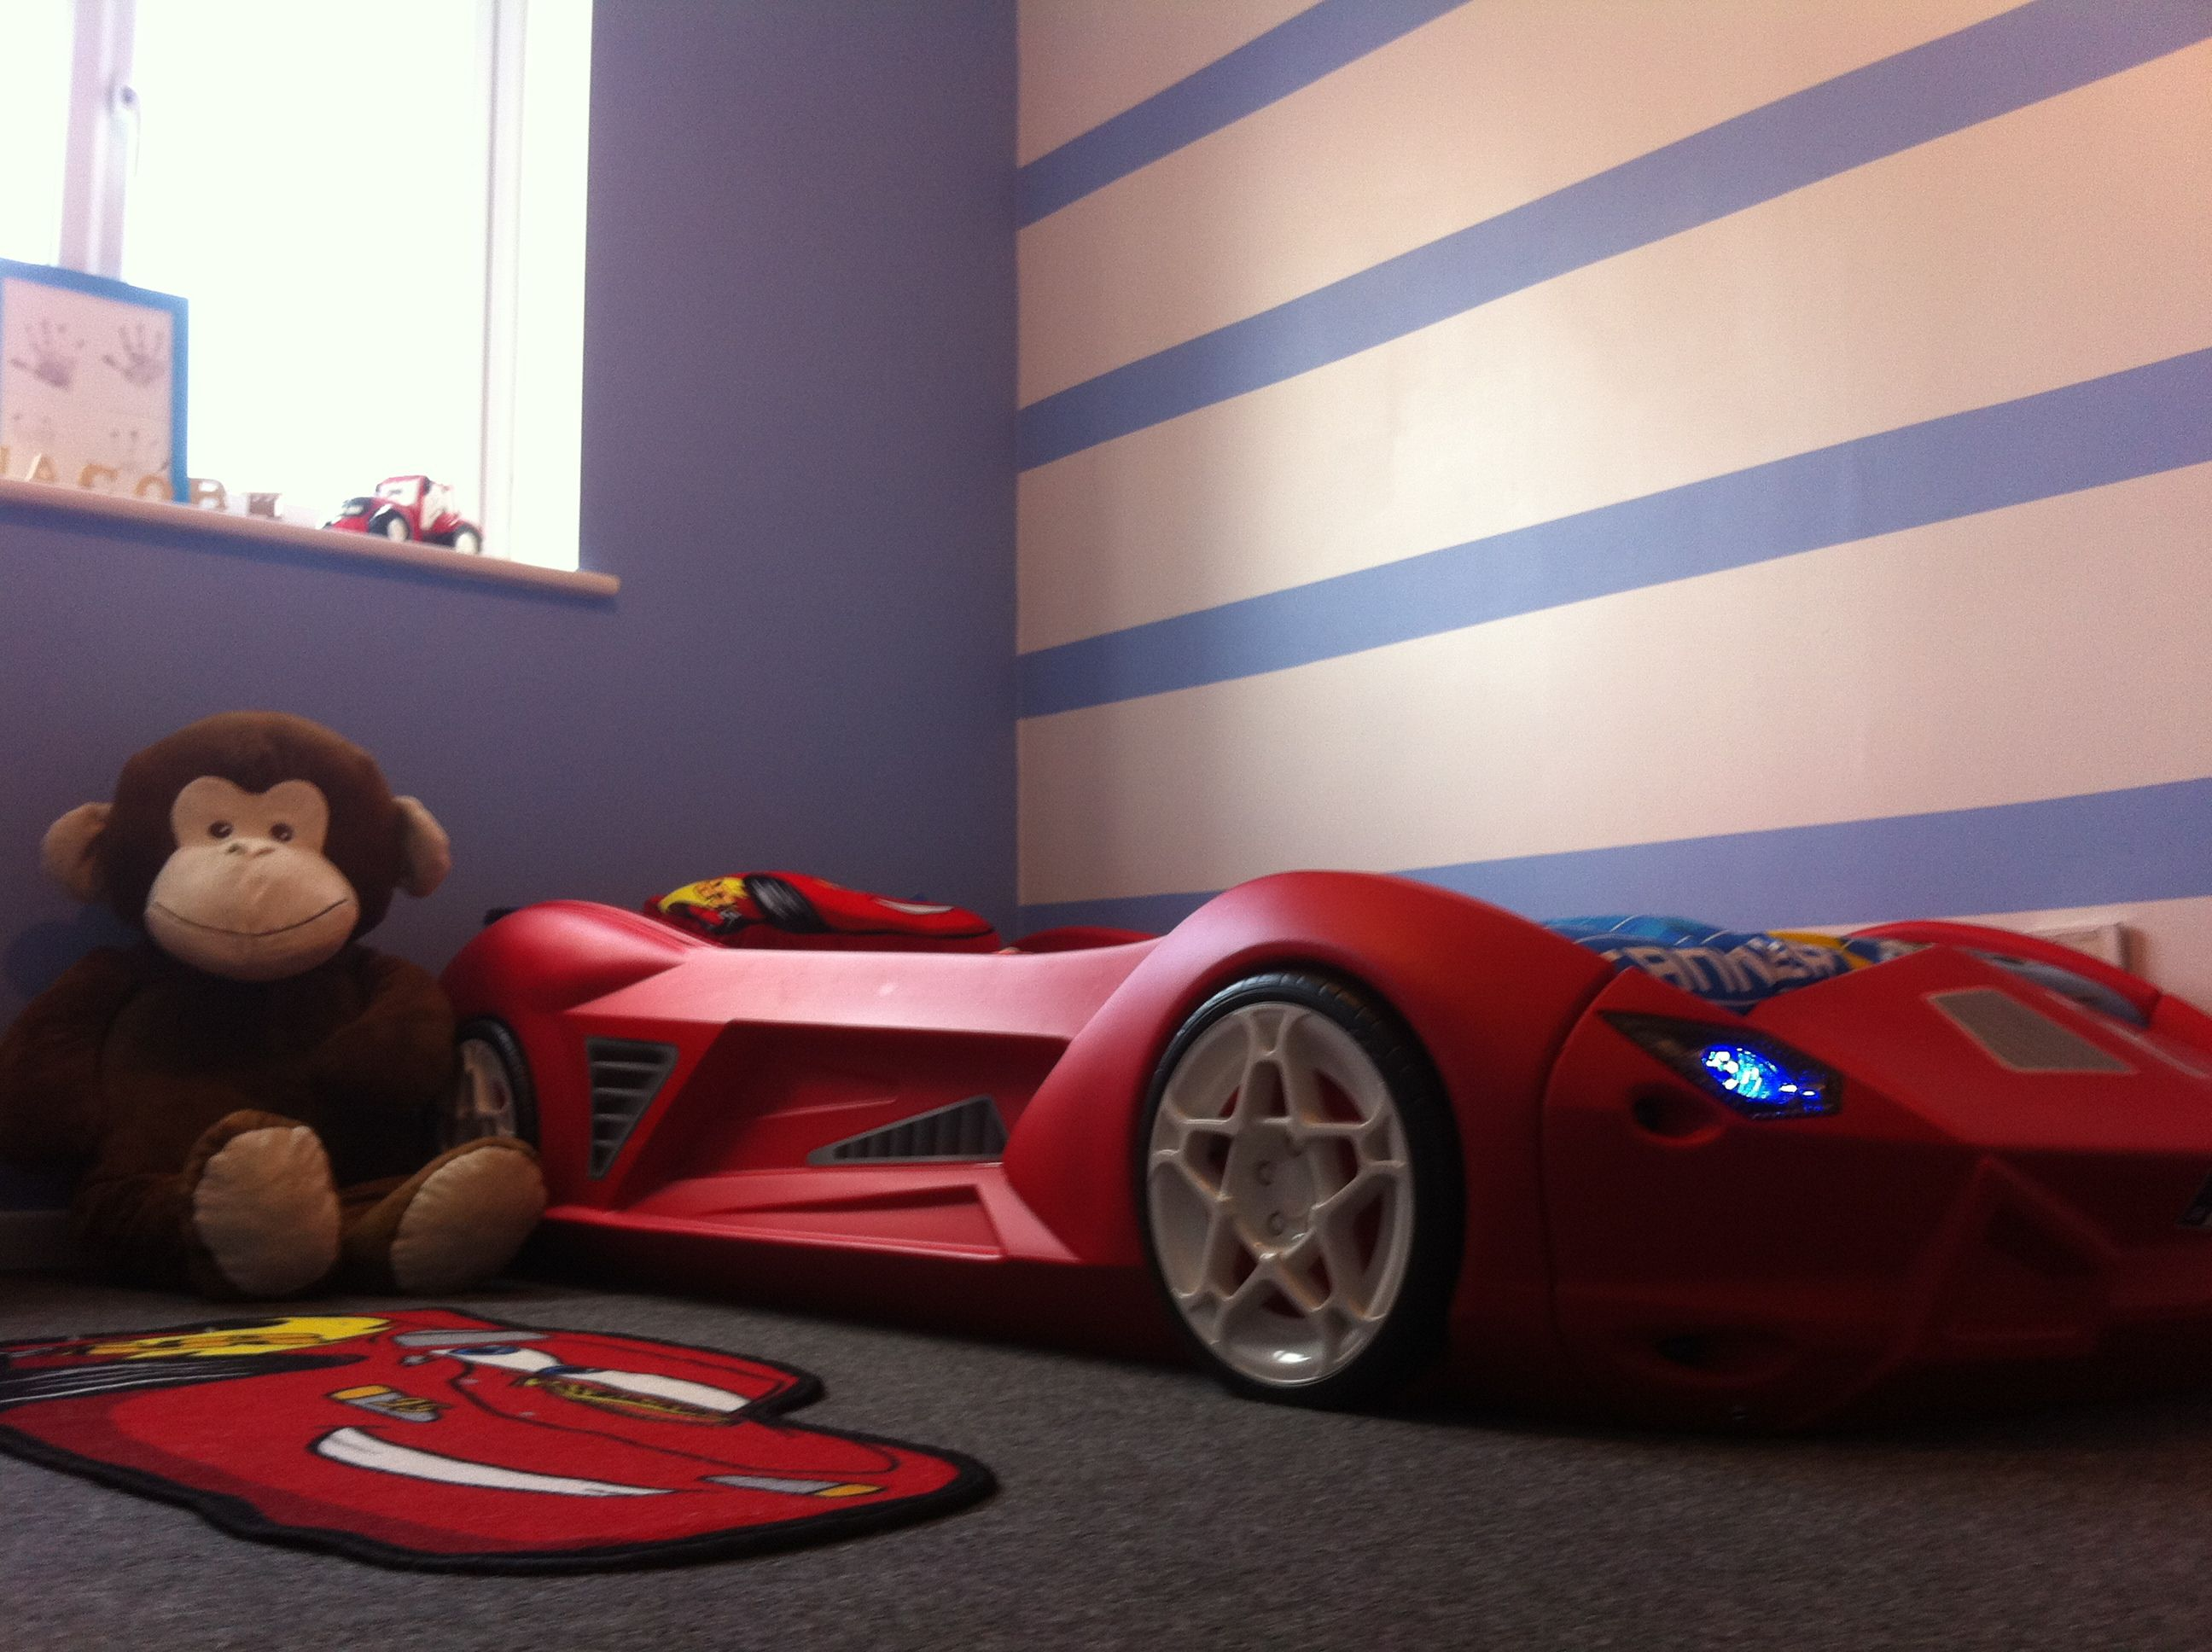 Boys car bedroom ideas - Boys Car Bed